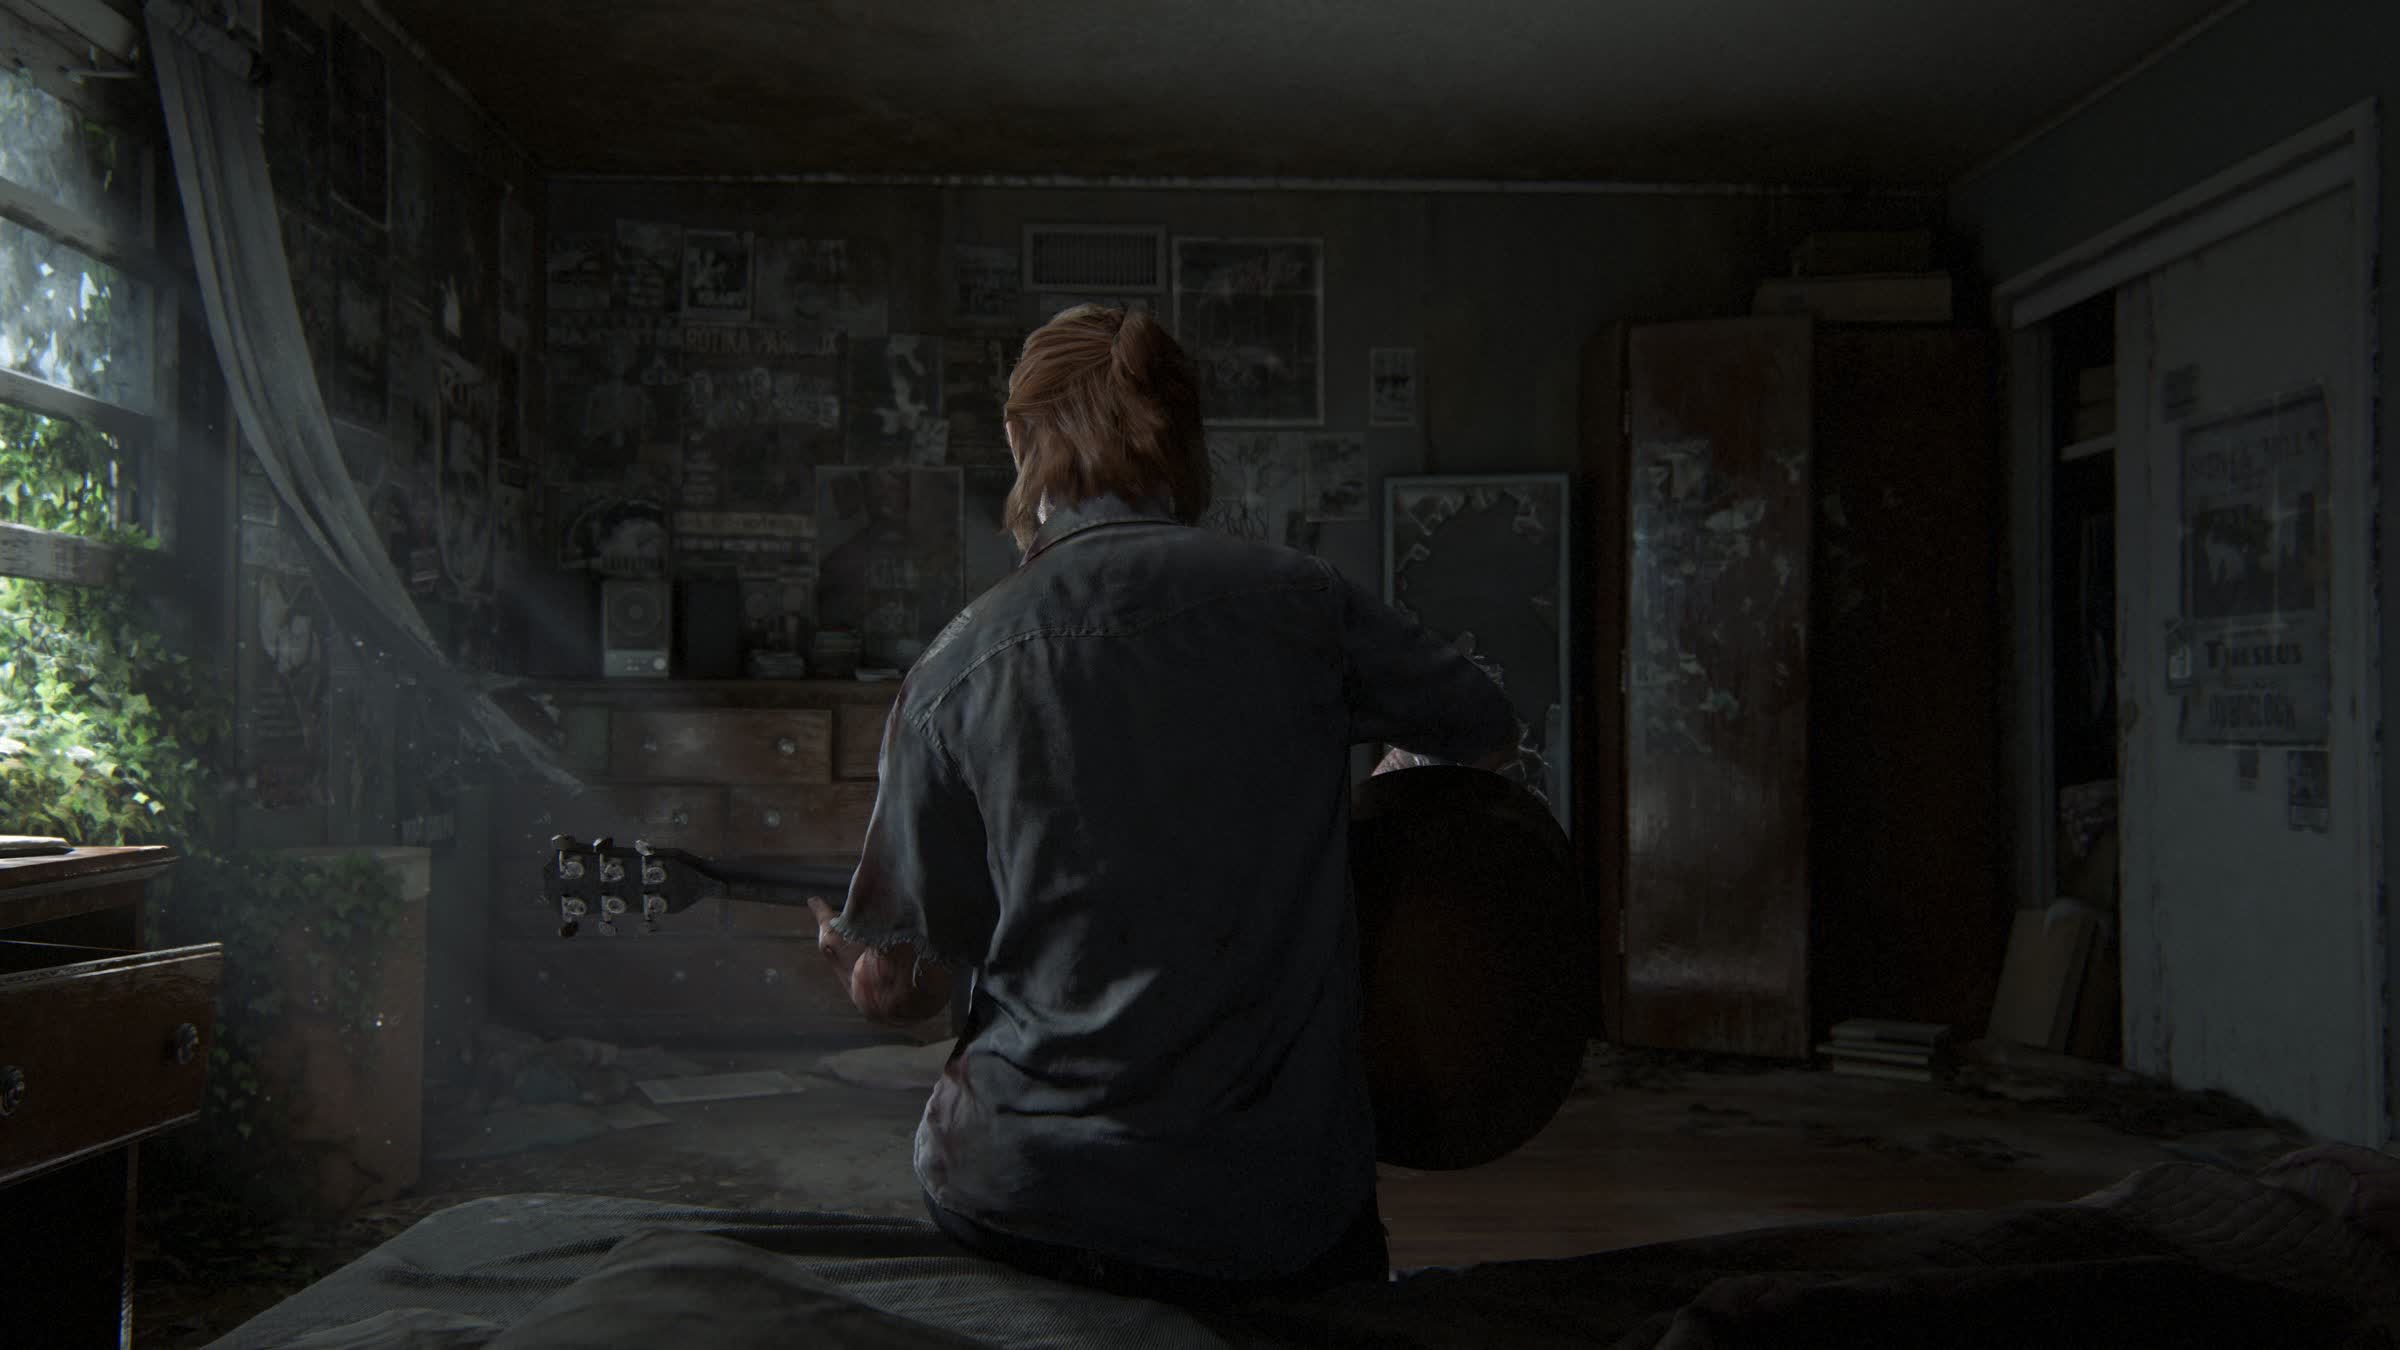 You can now play The Last of Us Part II on the PC through PlayStation Now